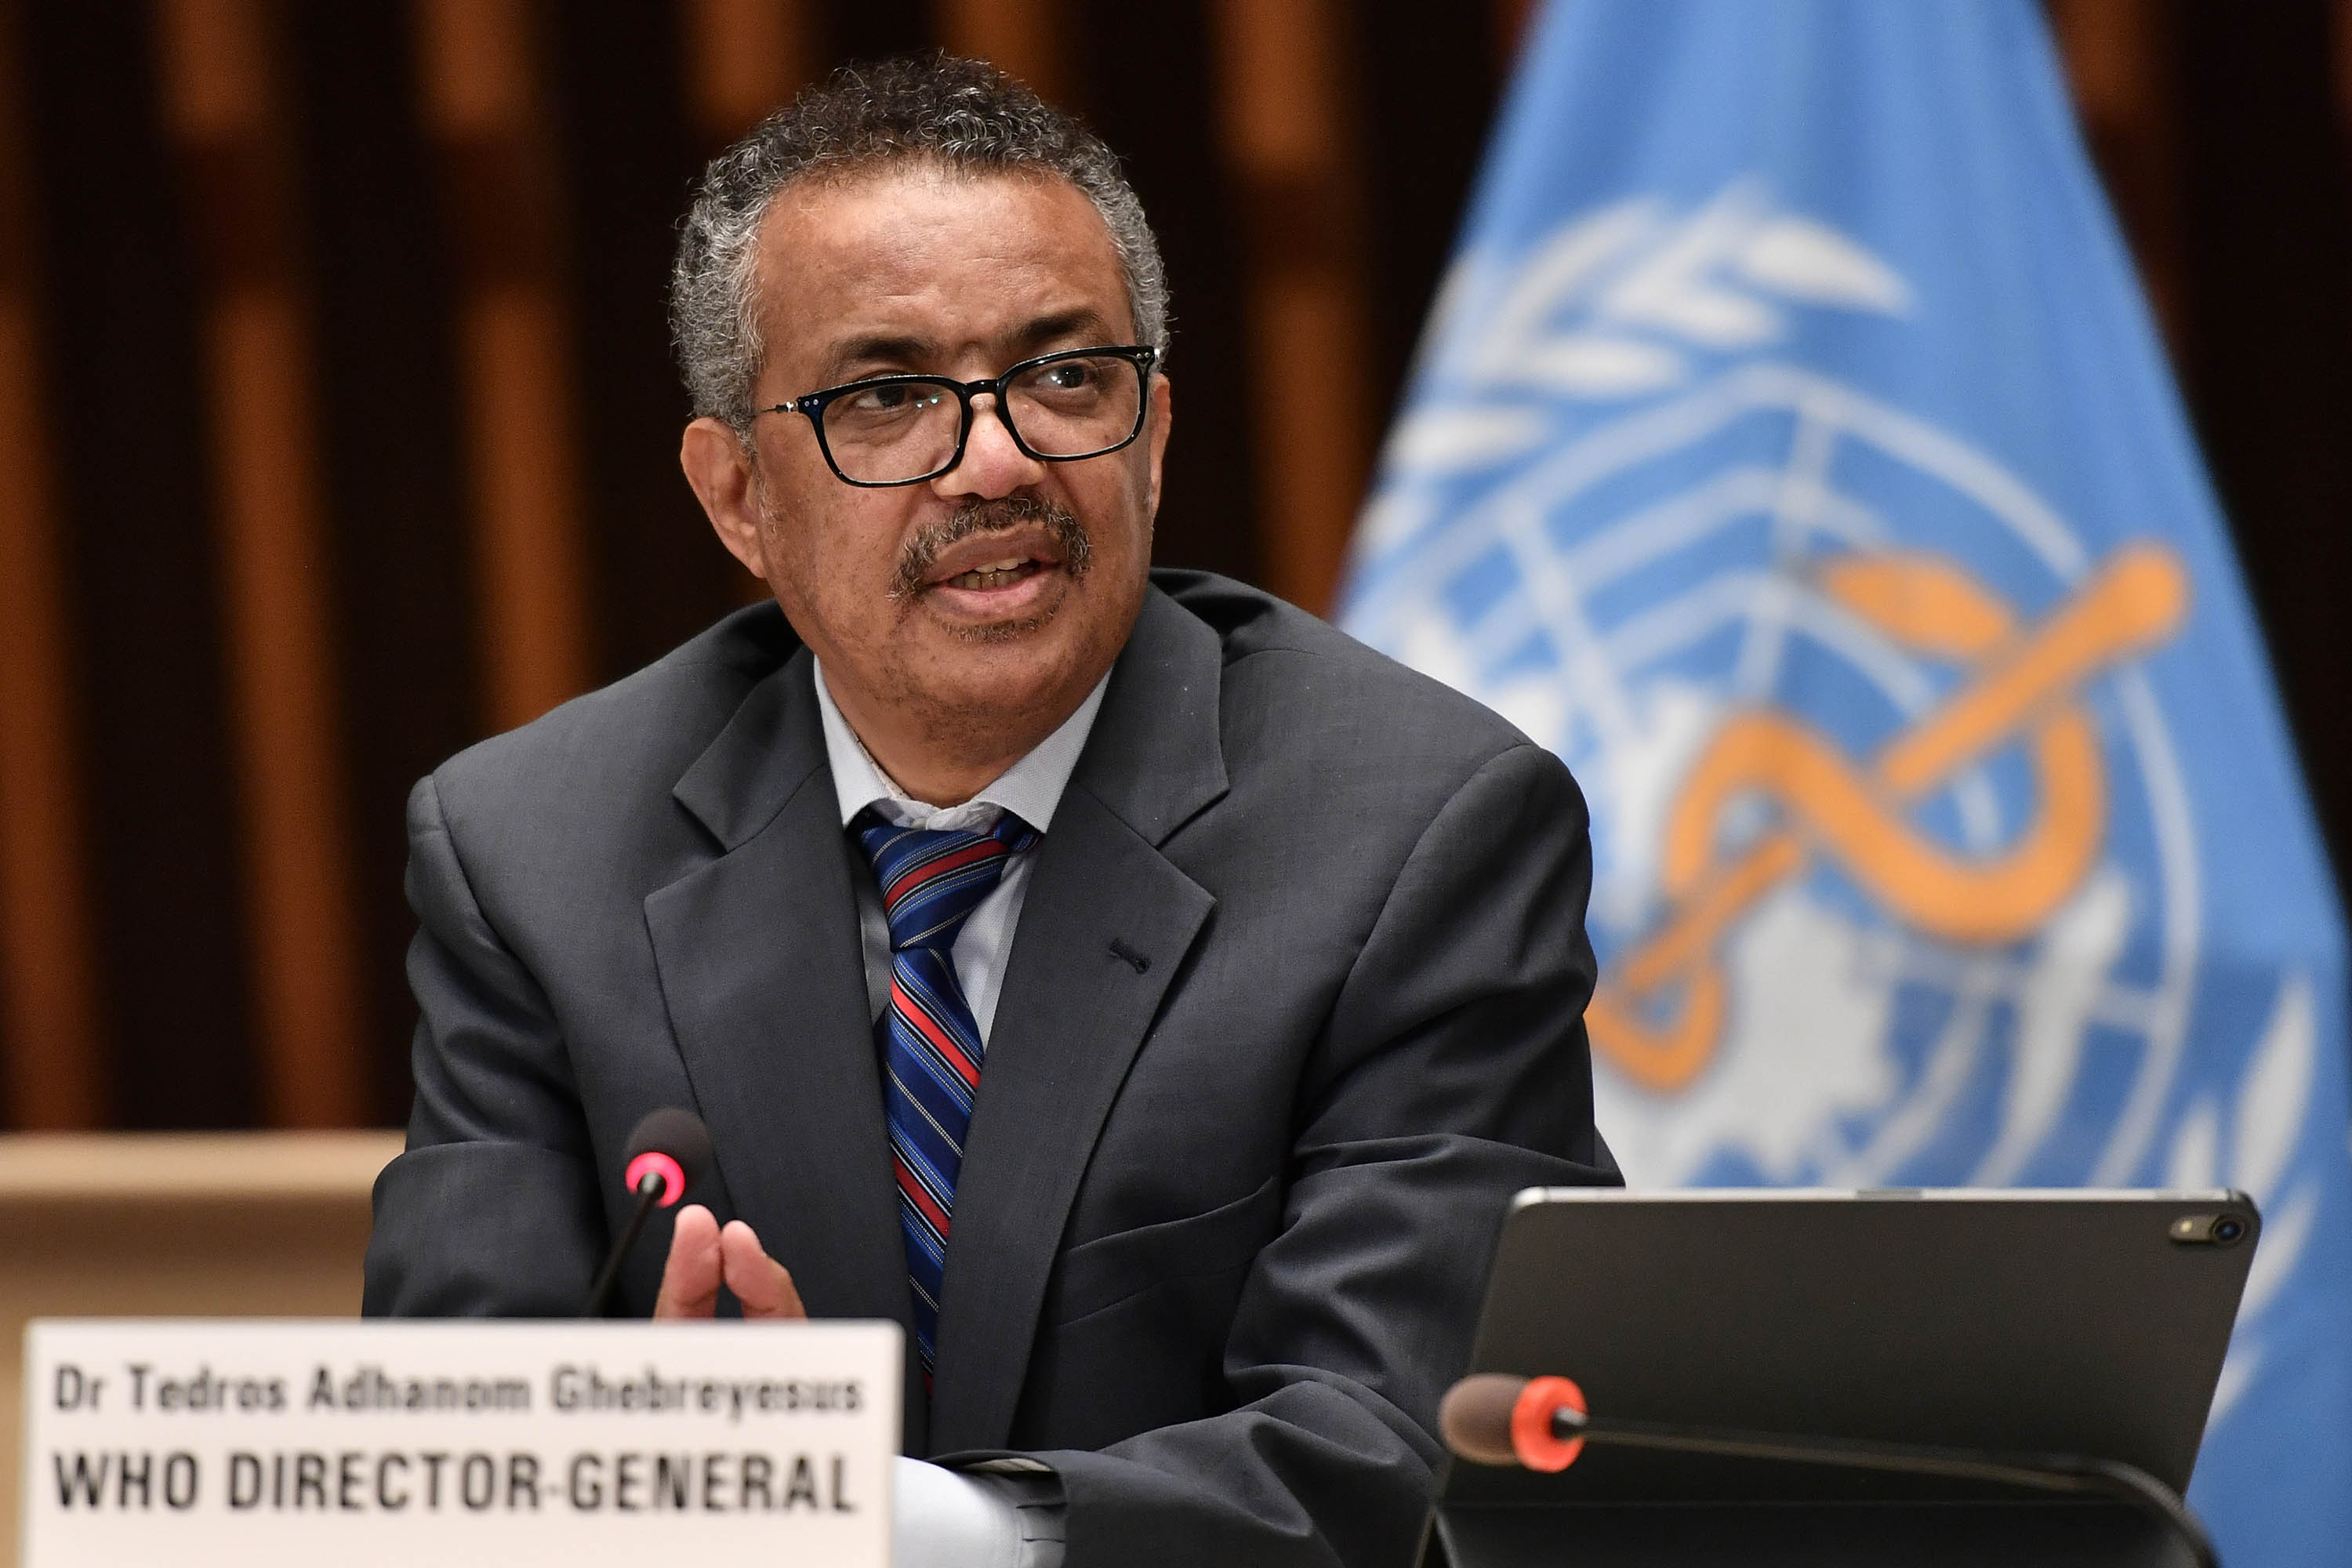 World Health Organization (WHO) Director-General Tedros Adhanom Ghebreyesus is pictured at a press conference at the WHO headquarters in Geneva, Switzerland, in July 2020.